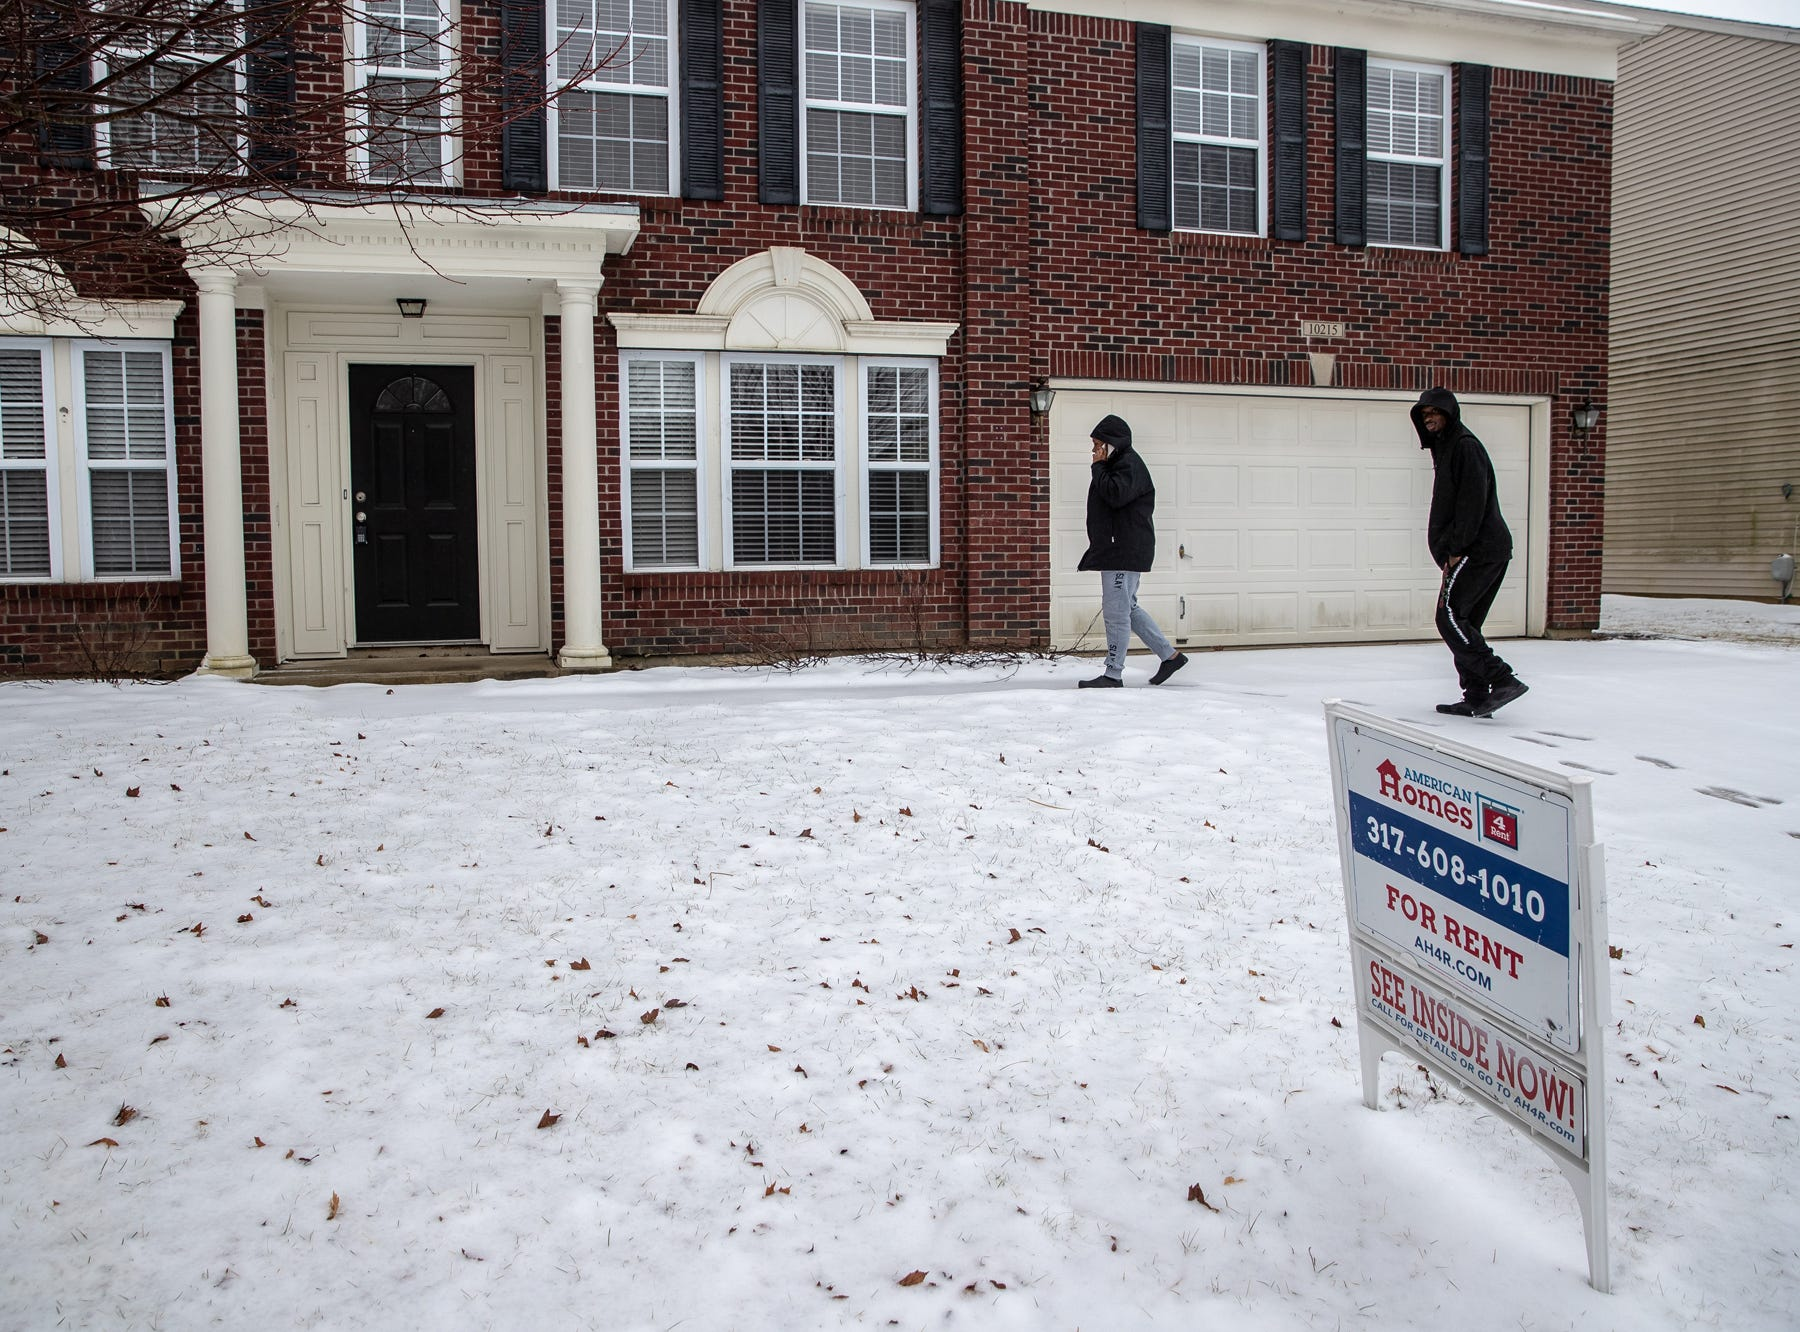 Latasha Sanders and her husband, Charles, make their way up to the door of a home for rent near Brownsburg, Ind., on Wednesday, Feb. 20, 2019. Latasha speaks to the man who claims he owns the home on the phone.